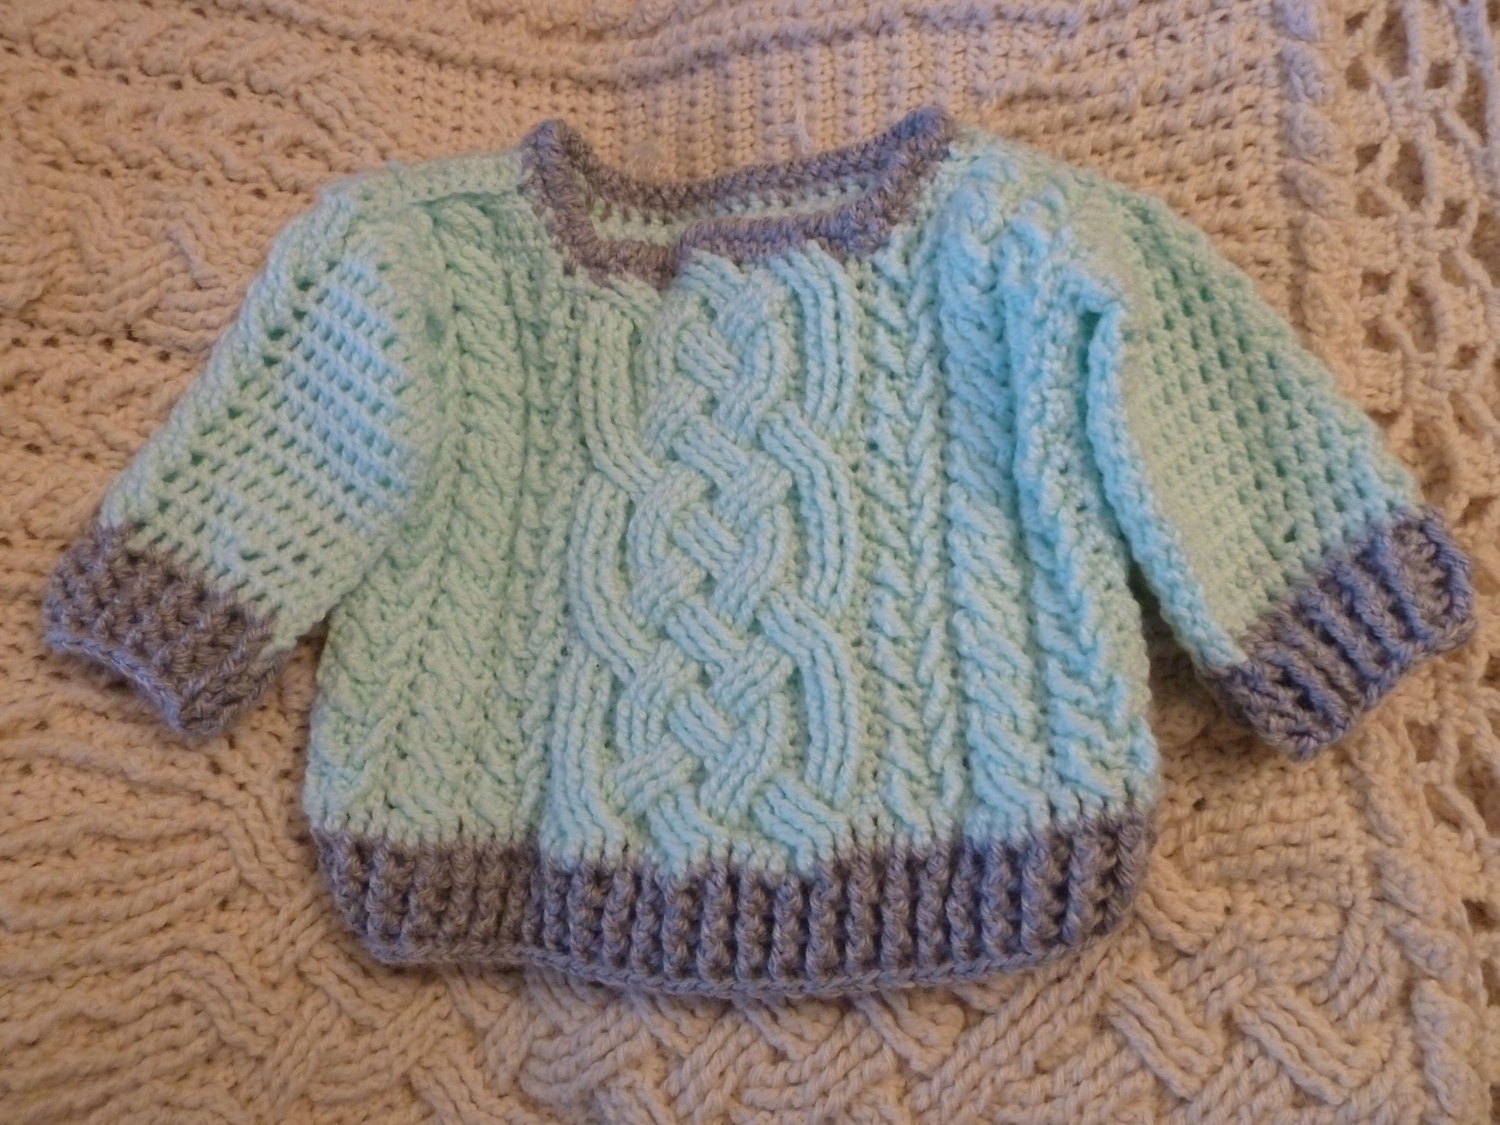 Aran Braided Cable Crochet Baby Sweater Pattern for boys and